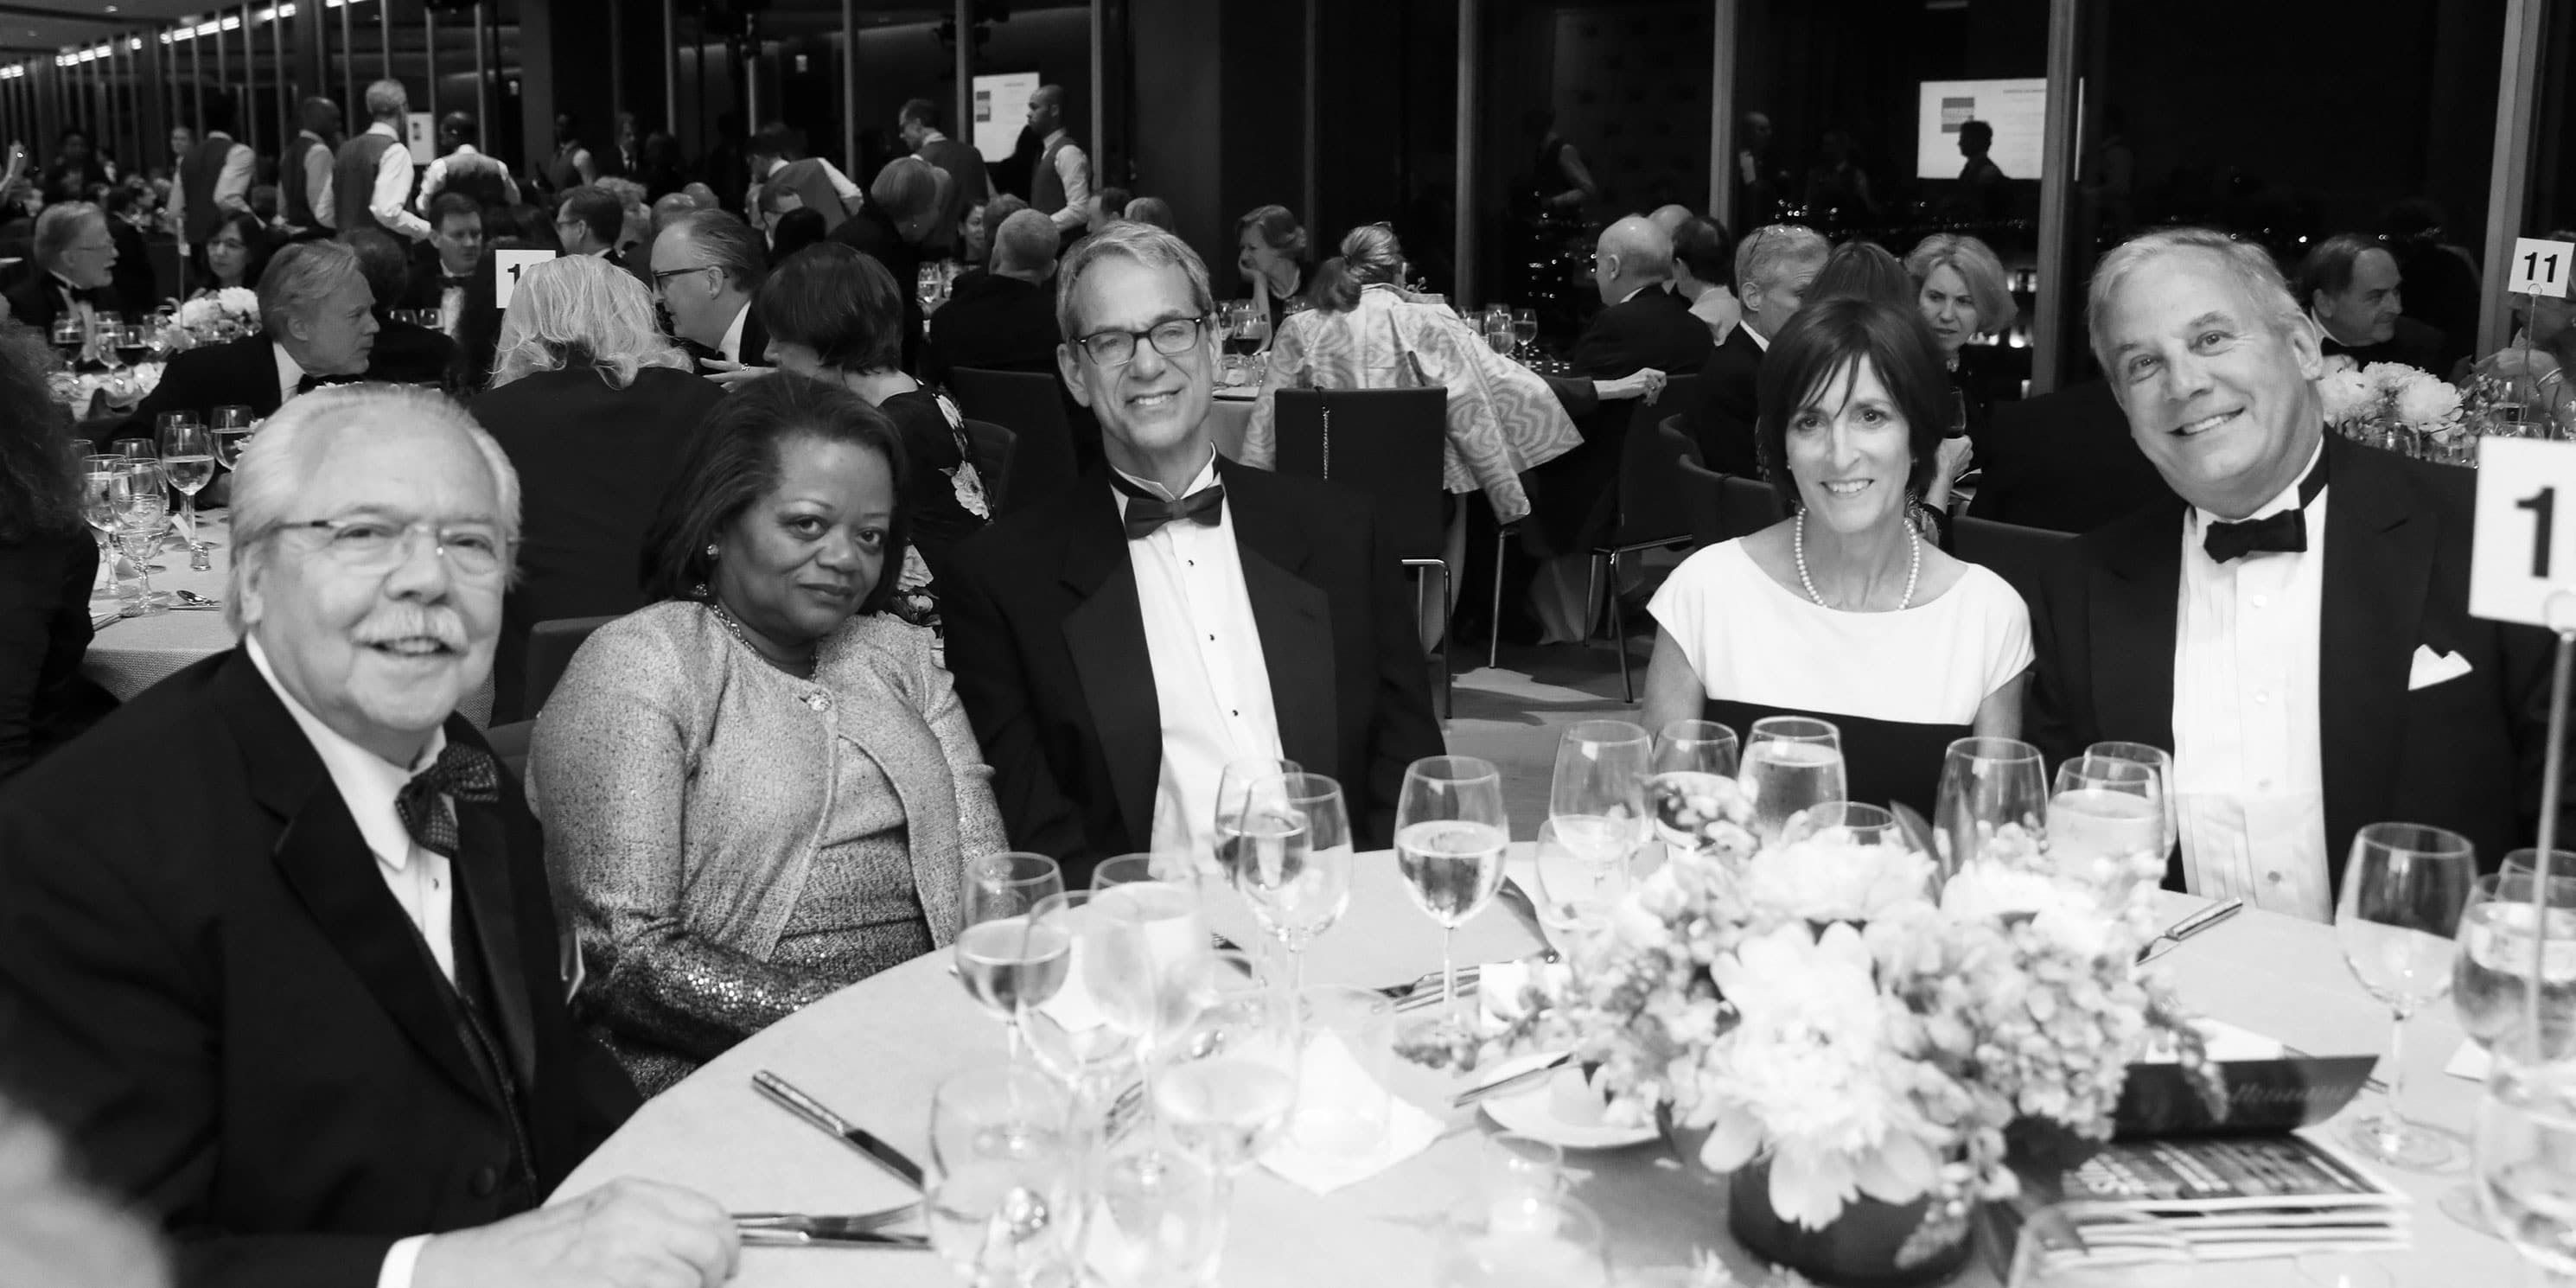 guests at dinner during the 2018 Gala